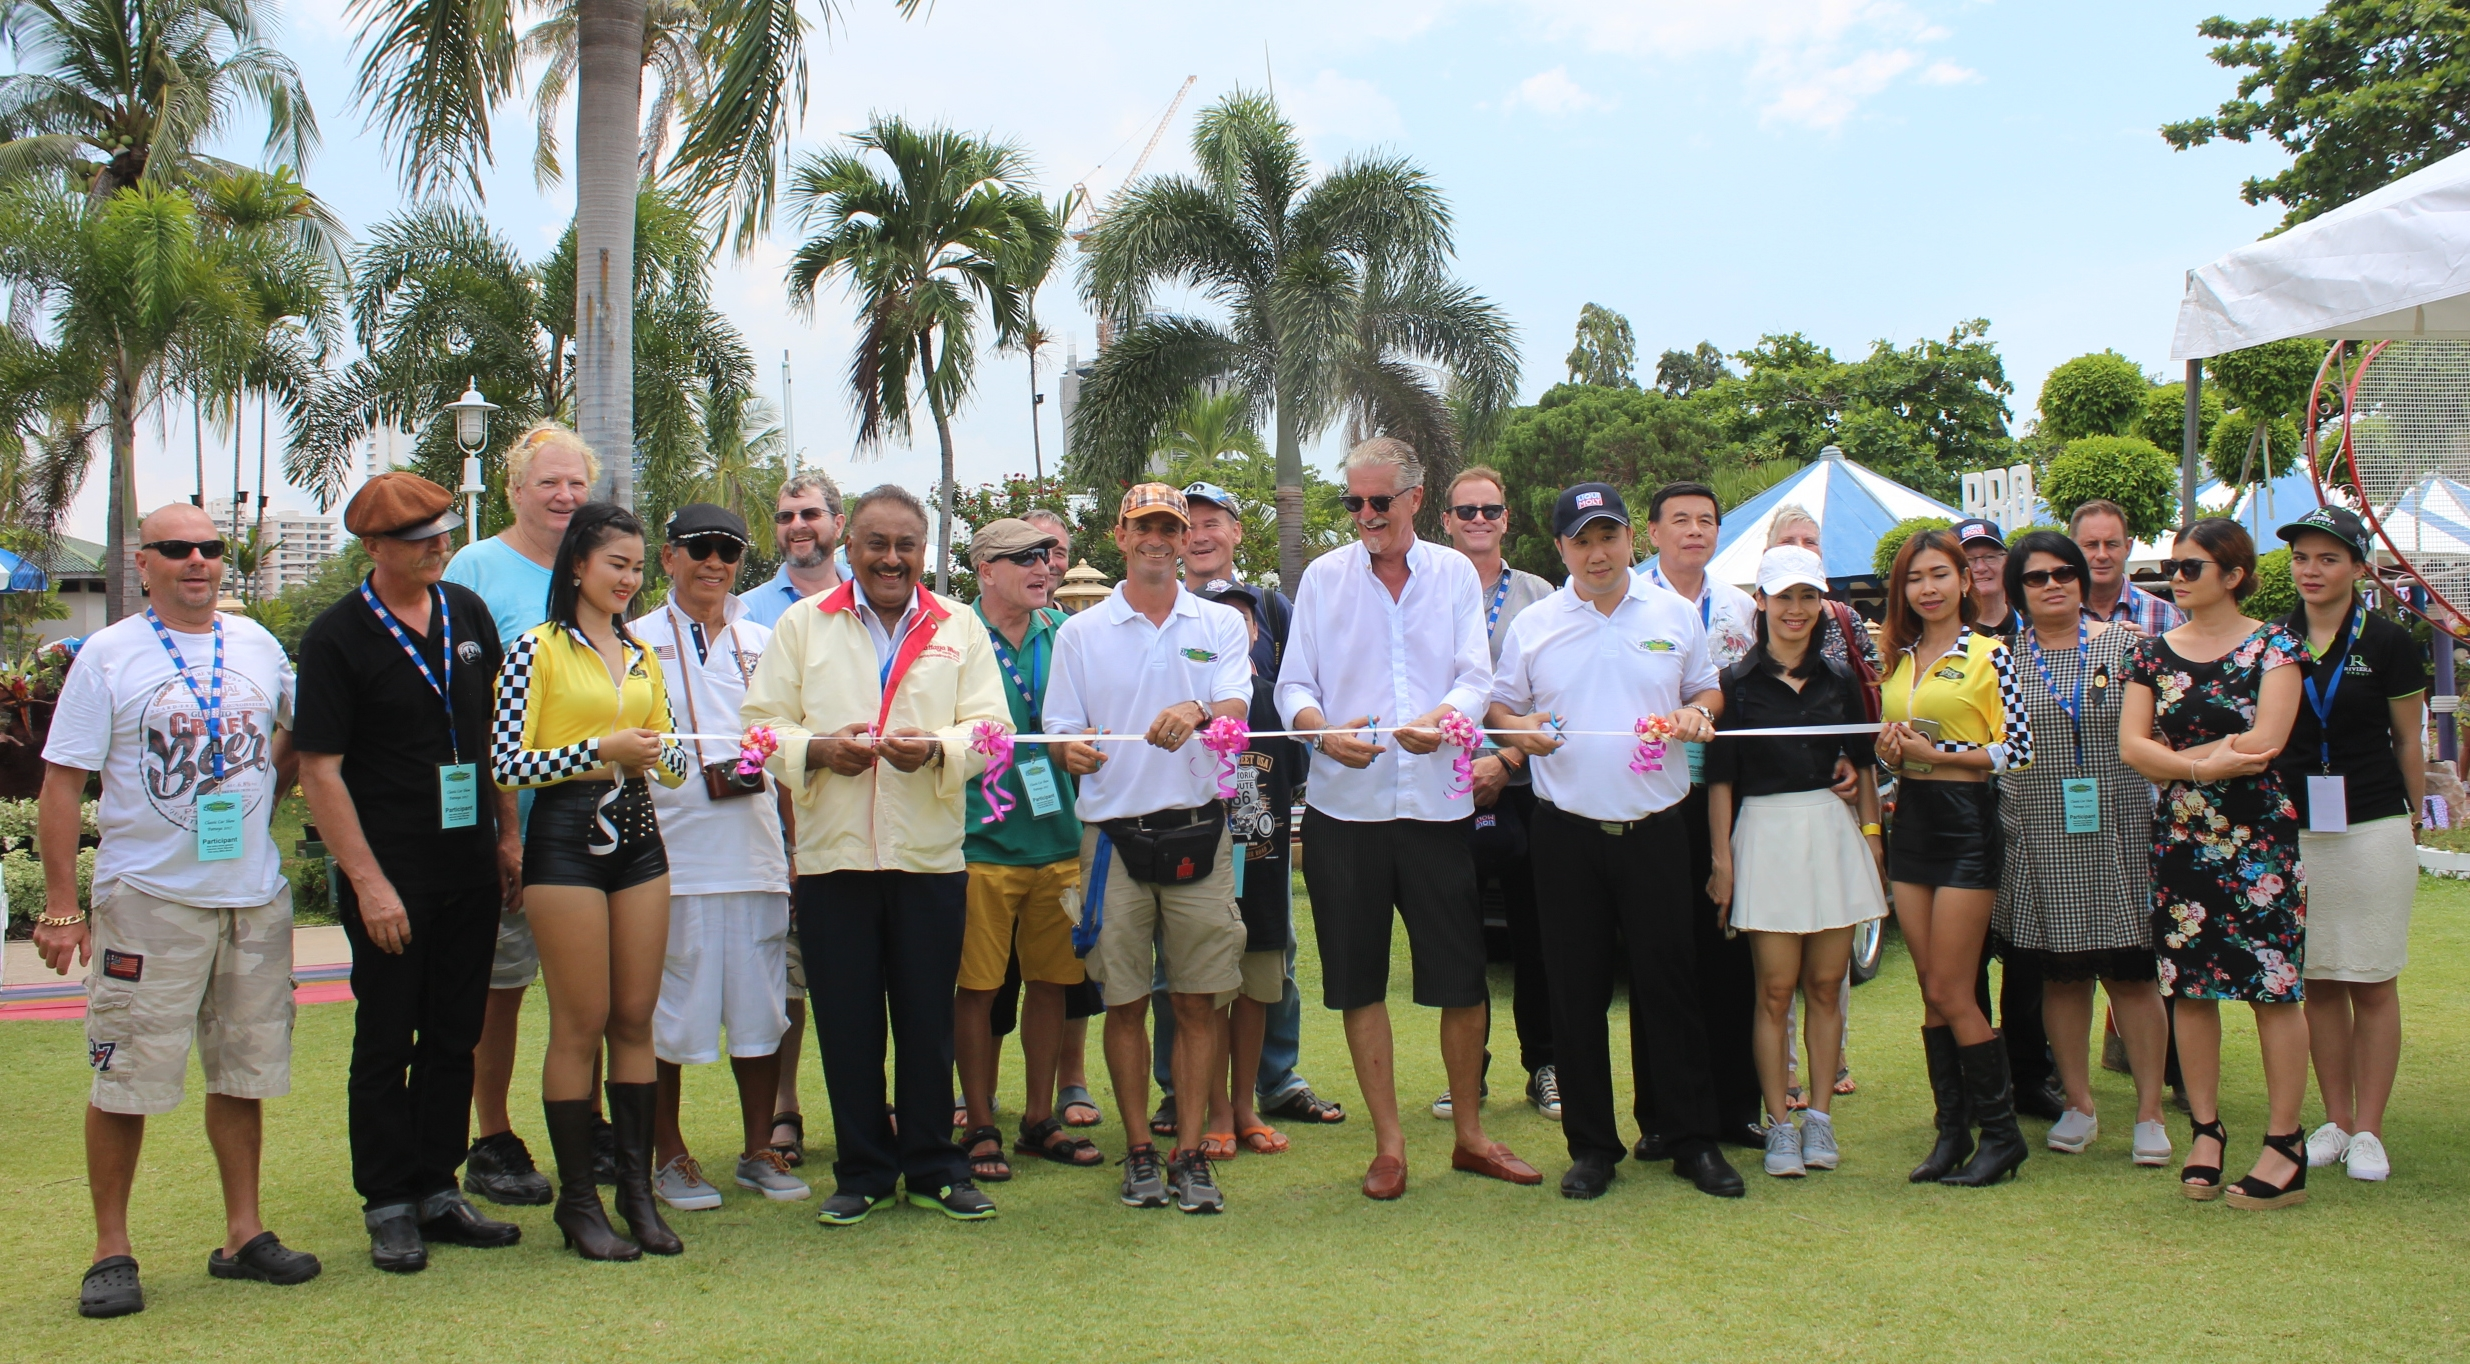 Participants, sponsors and guests gather around as Klisada Eineew (Rengboon Auto Service), Peter Malhotra, (Pattaya Mail), Martin Koller (Europa Auto Service), Jo Klemm (Classic Cars Friends Club Pattaya) and Phisut Sae-khu (RM Asia Pattaya Hotel) cut the ceremonial ribbon to declare the 2017 Pattaya Classic Car Show open.